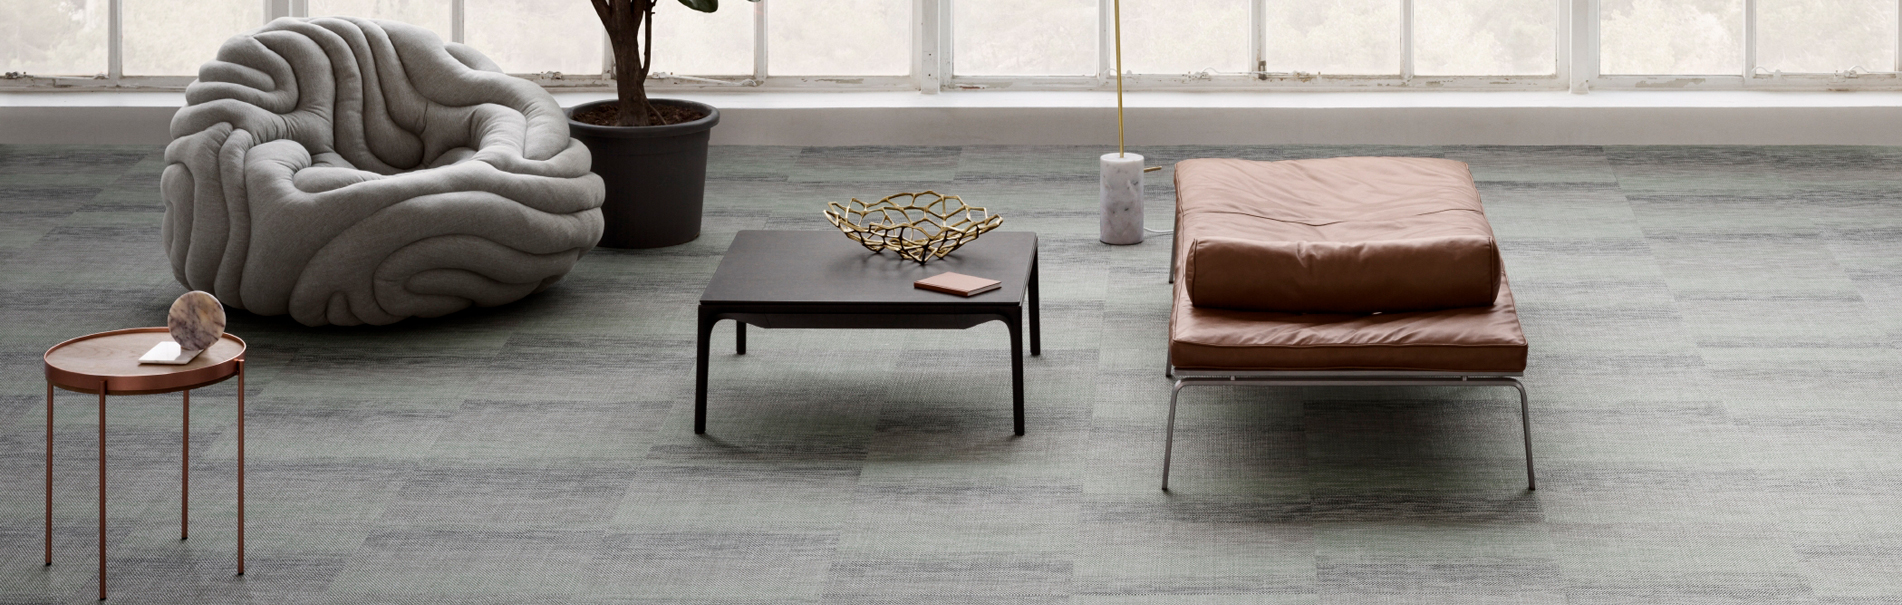 Bolon Tile - Gallery